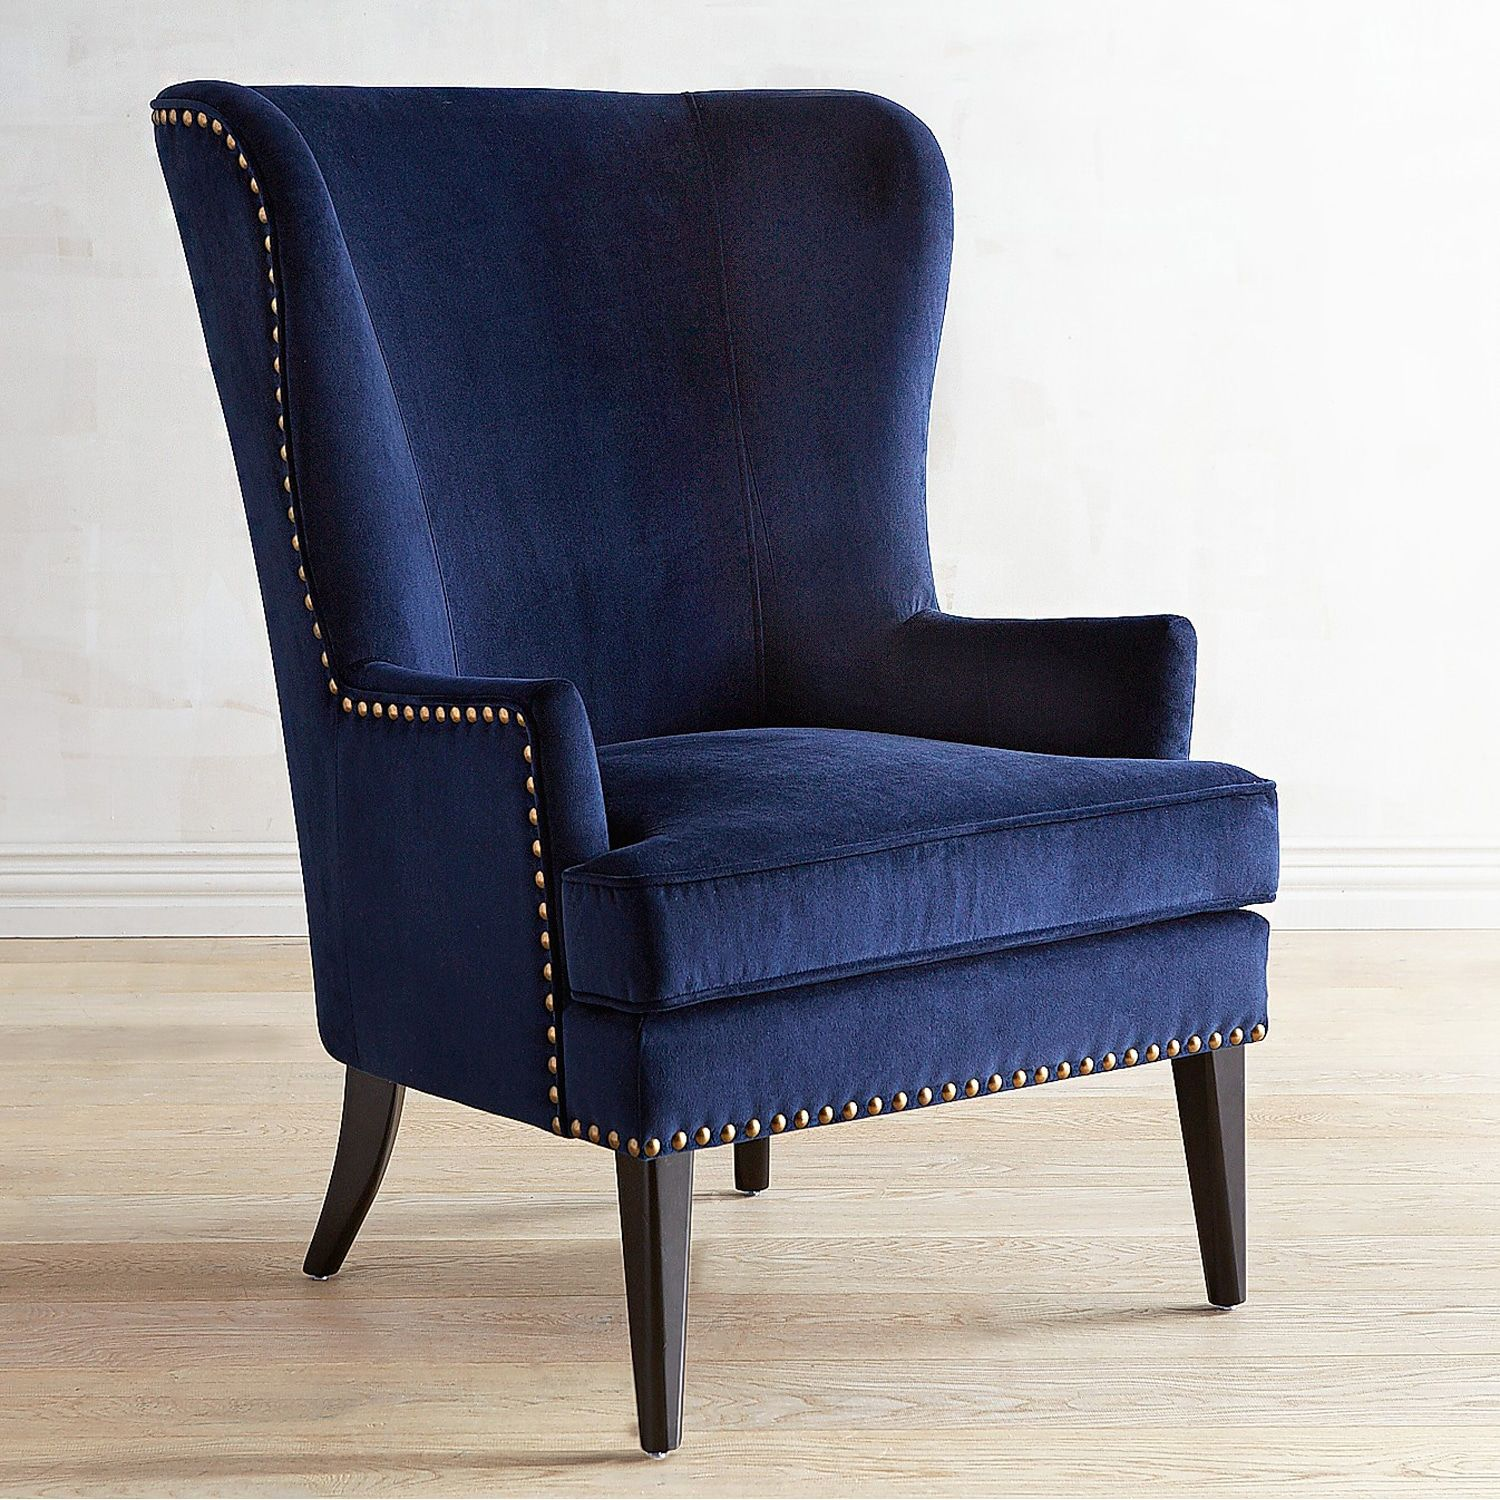 Asher chair blue wing chair blue accent chairs blue